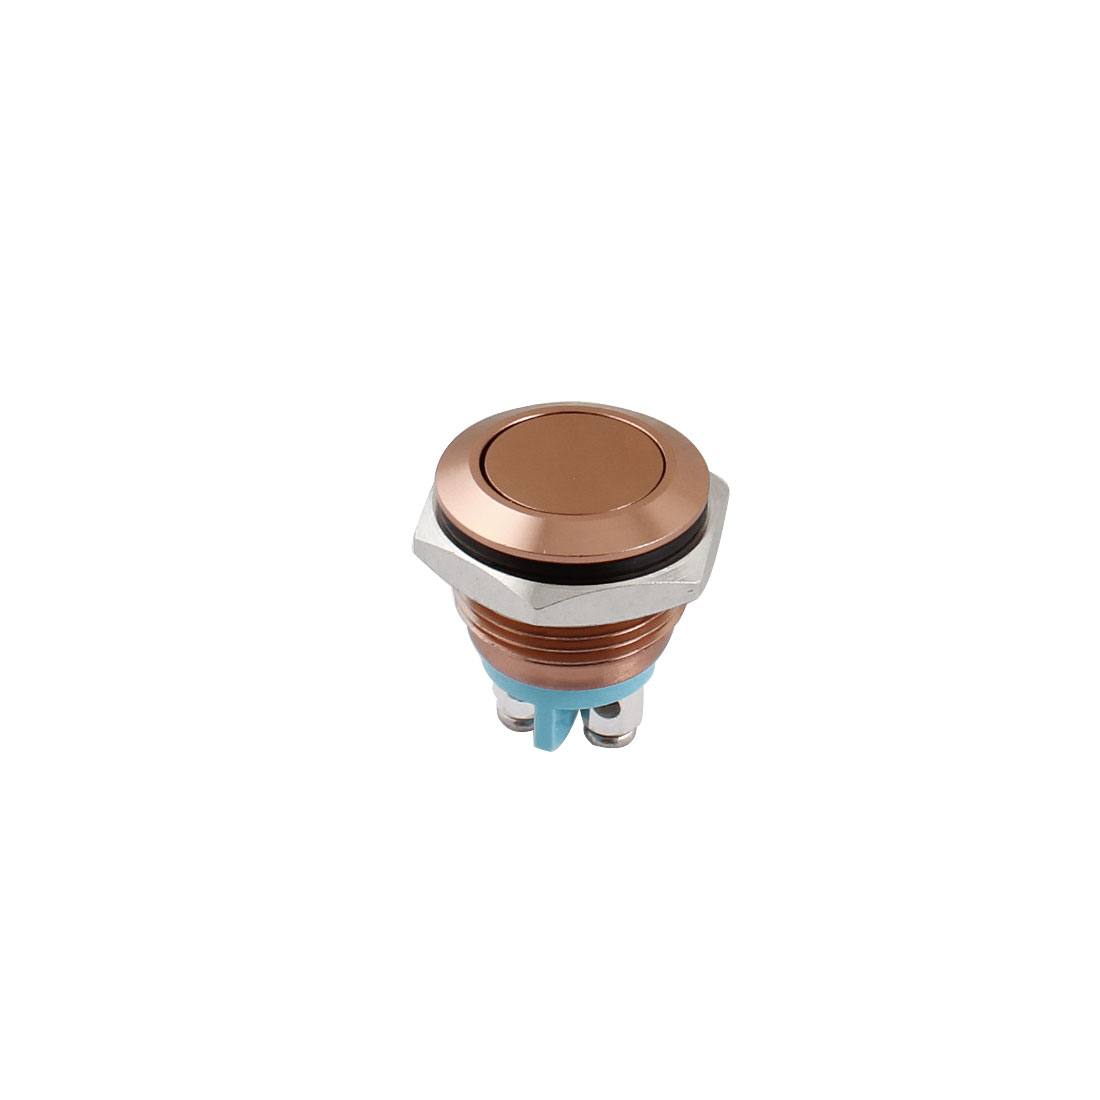 AC 250V 3A 16mm Dia Thread Panel Mount SPST Normal Open Momentary Coffee Color Metal Push Button Switch